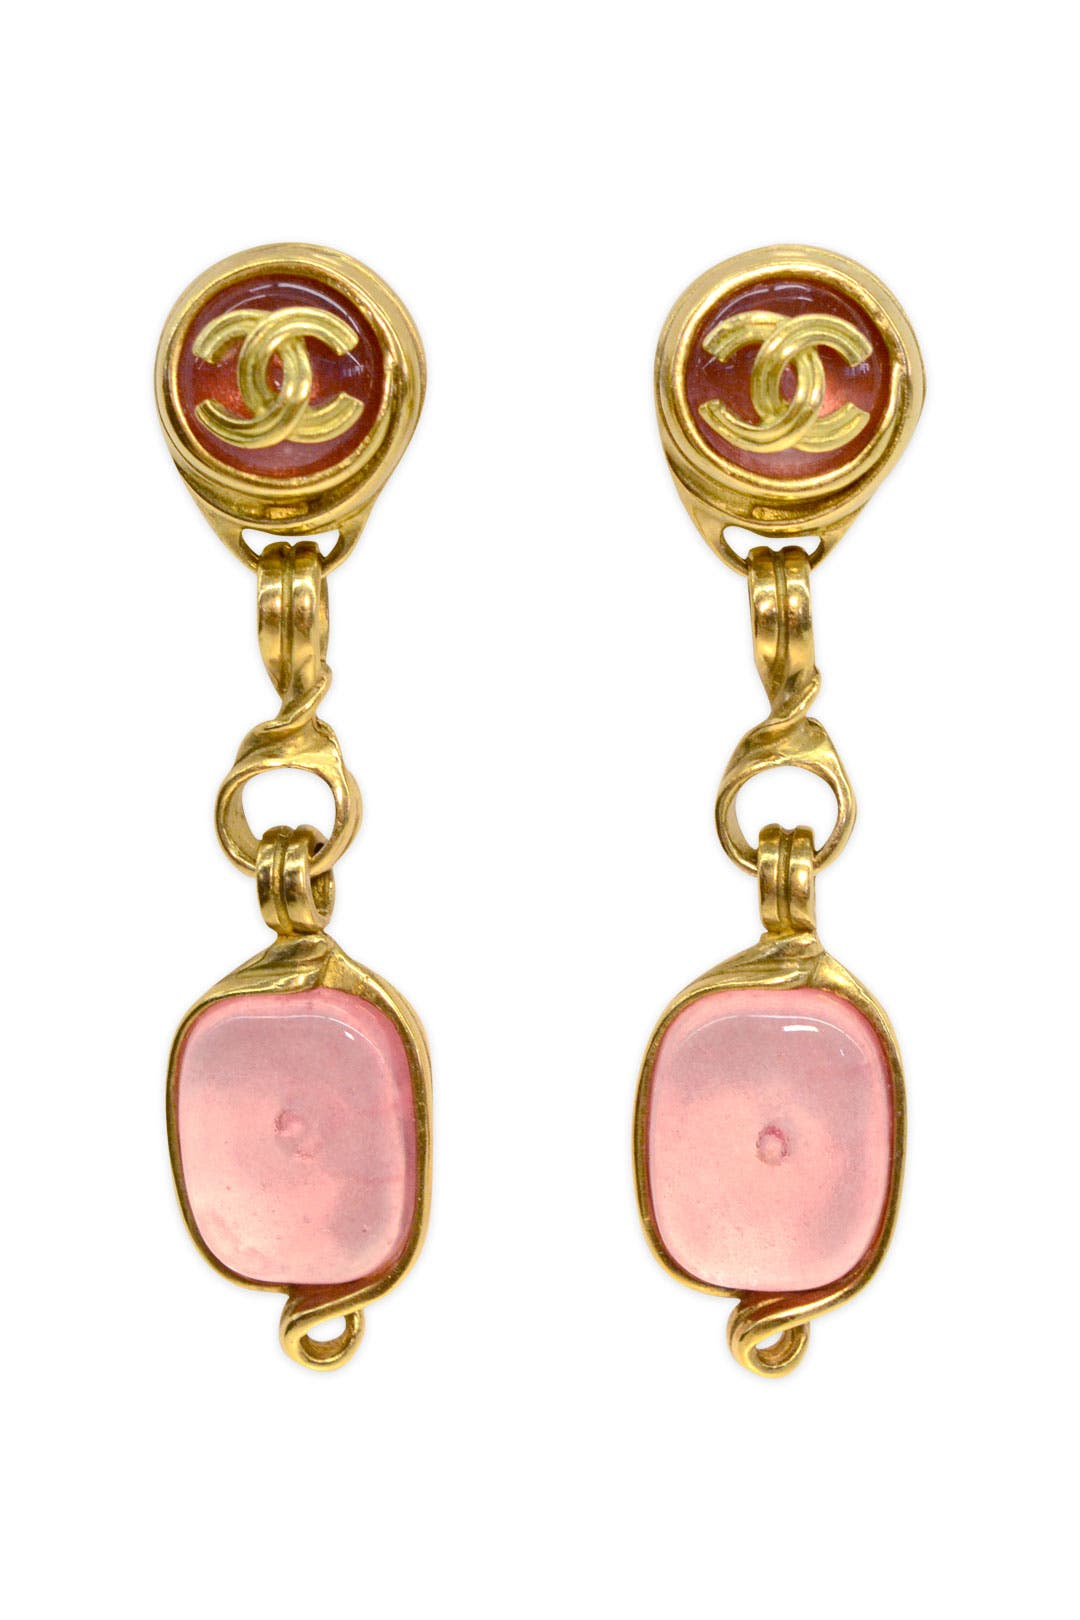 Vintage Chanel Pink Gripoix Drop Earrings by WGACA Vintage